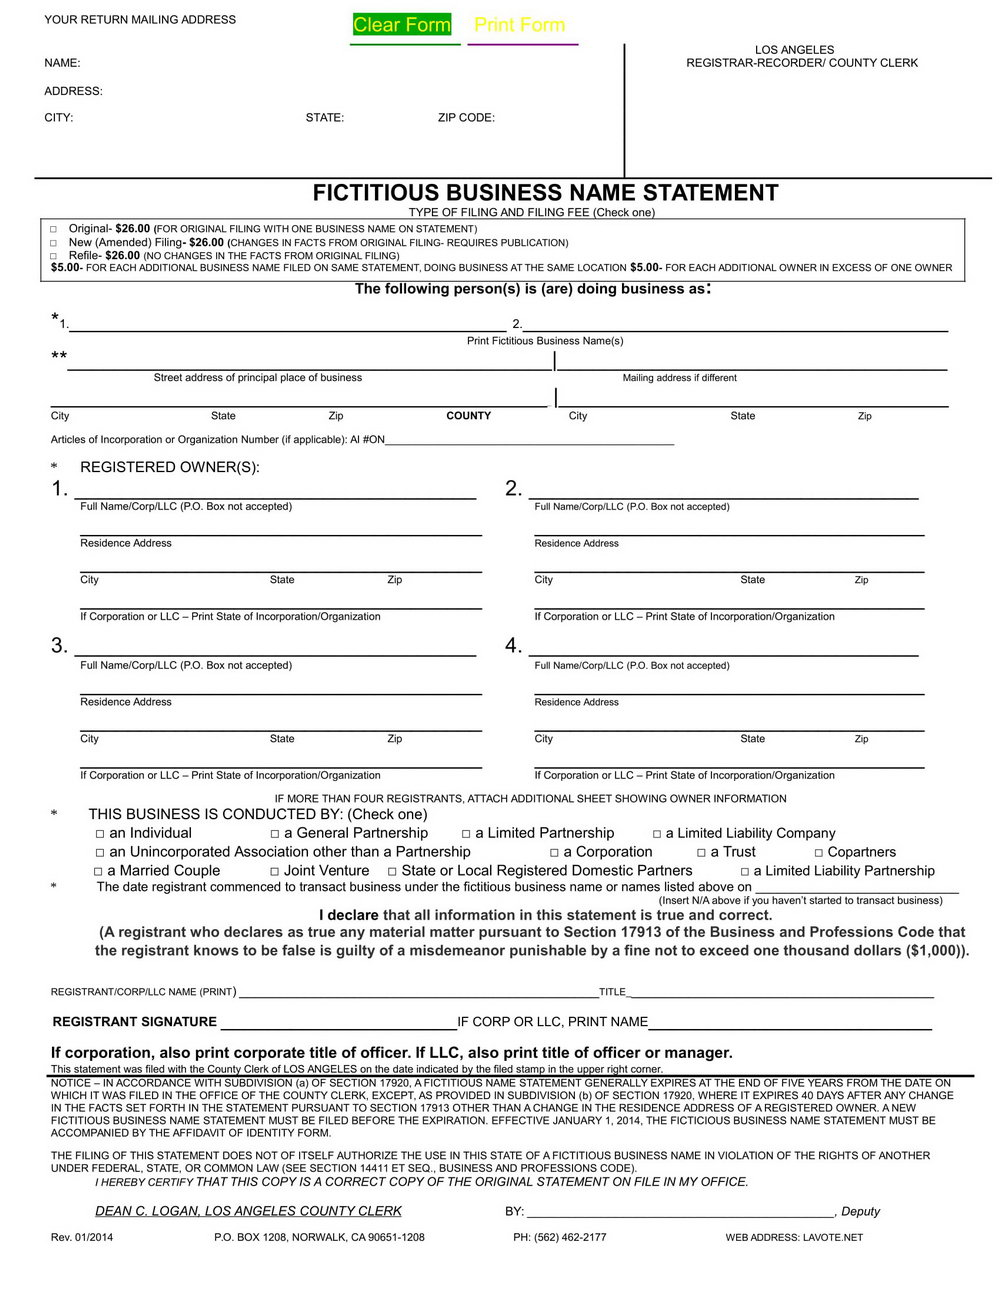 Fictitious Business Name Statement Form Los Angeles County